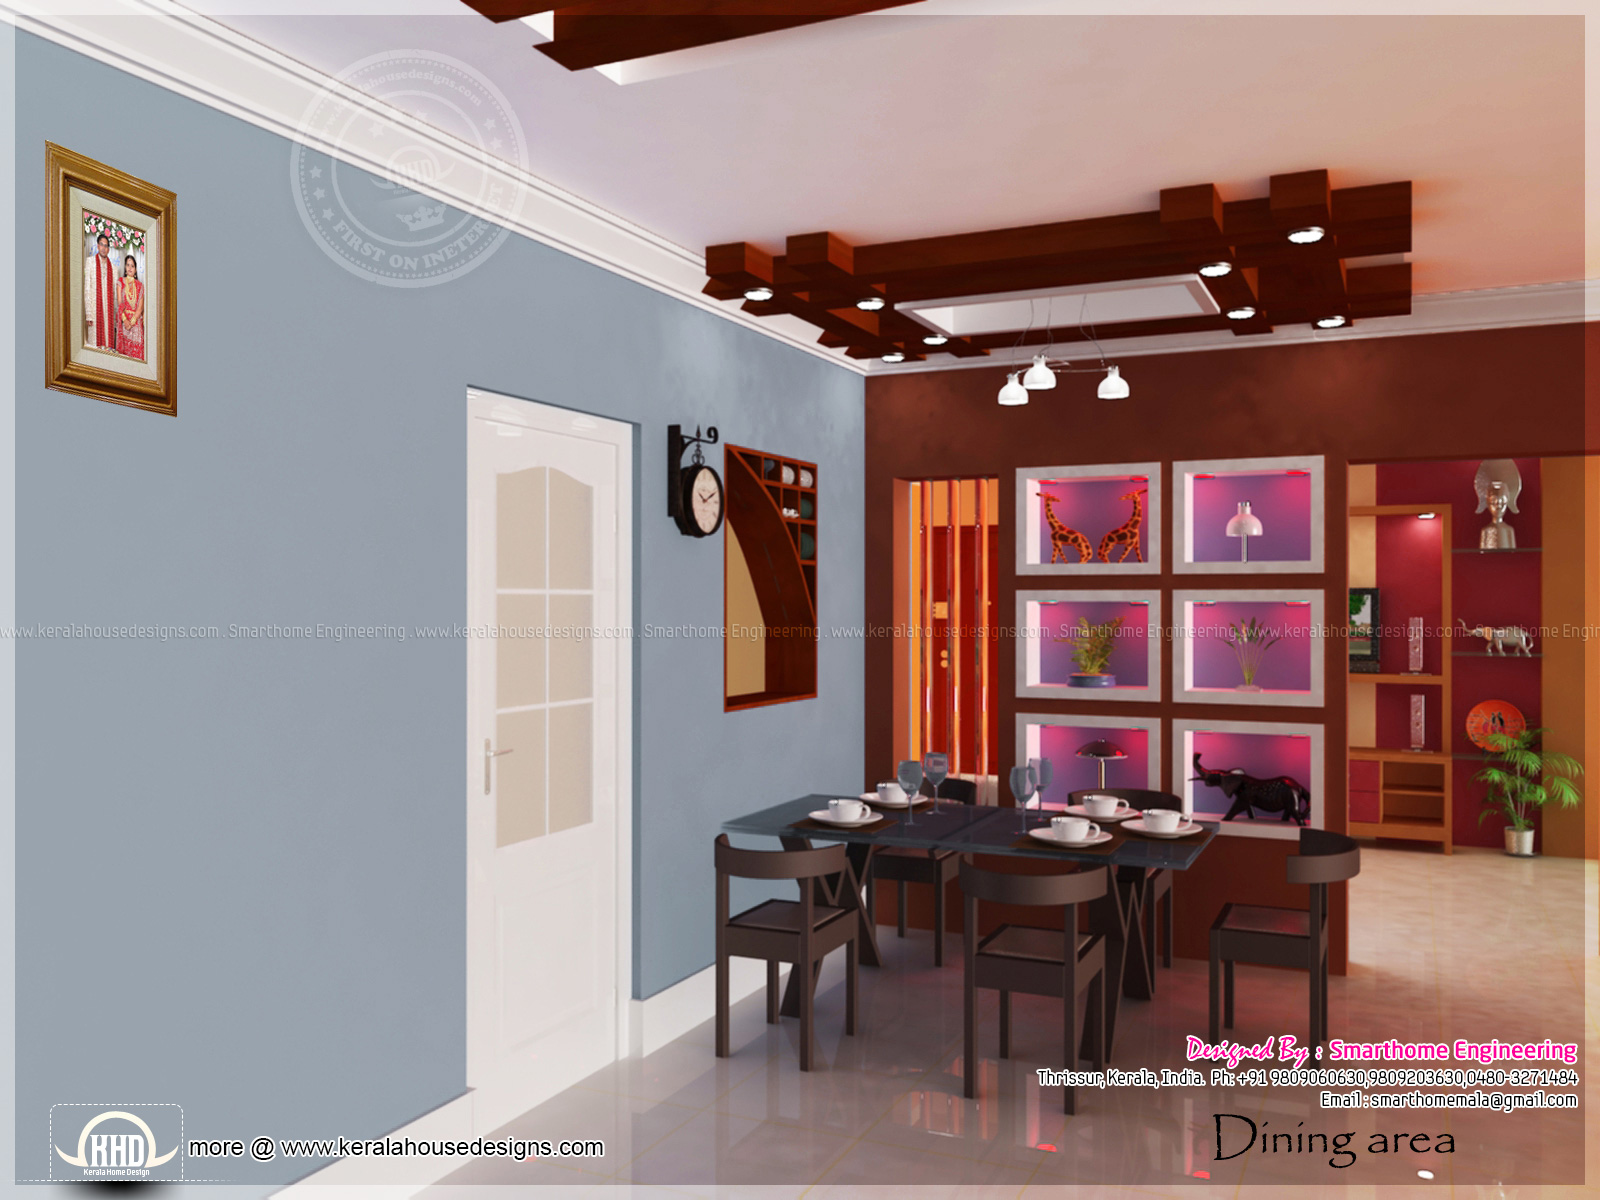 Home interior design by smarthome engineering thrissur for Dining room designs in kerala